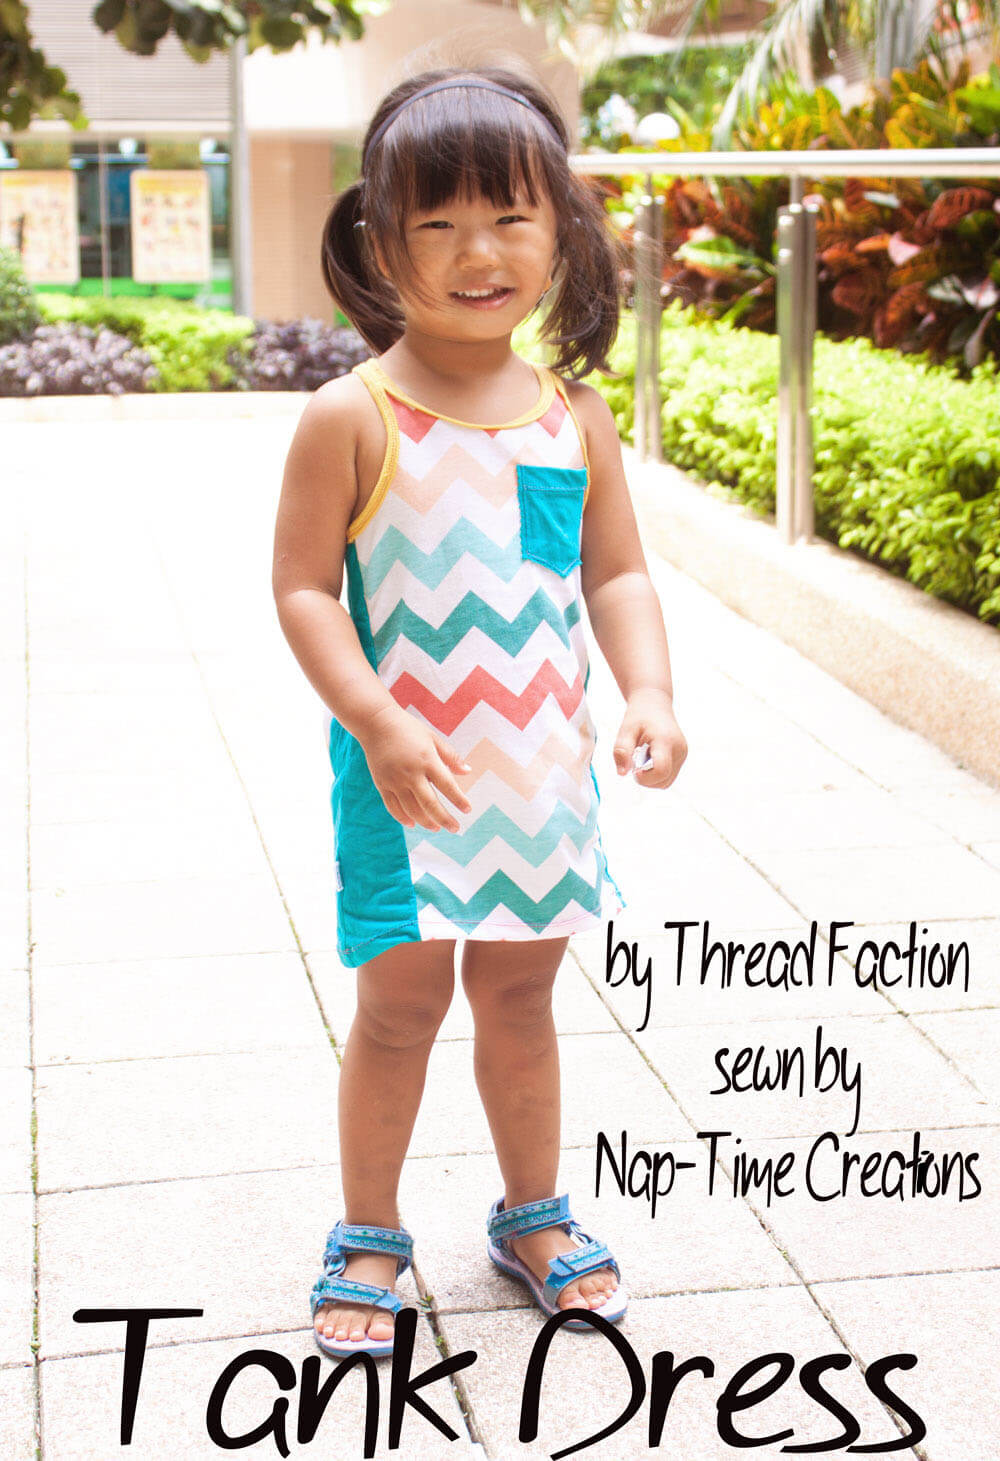 thread-faction-tour-tank-dress-sewn-by-Nap-Time-Creations